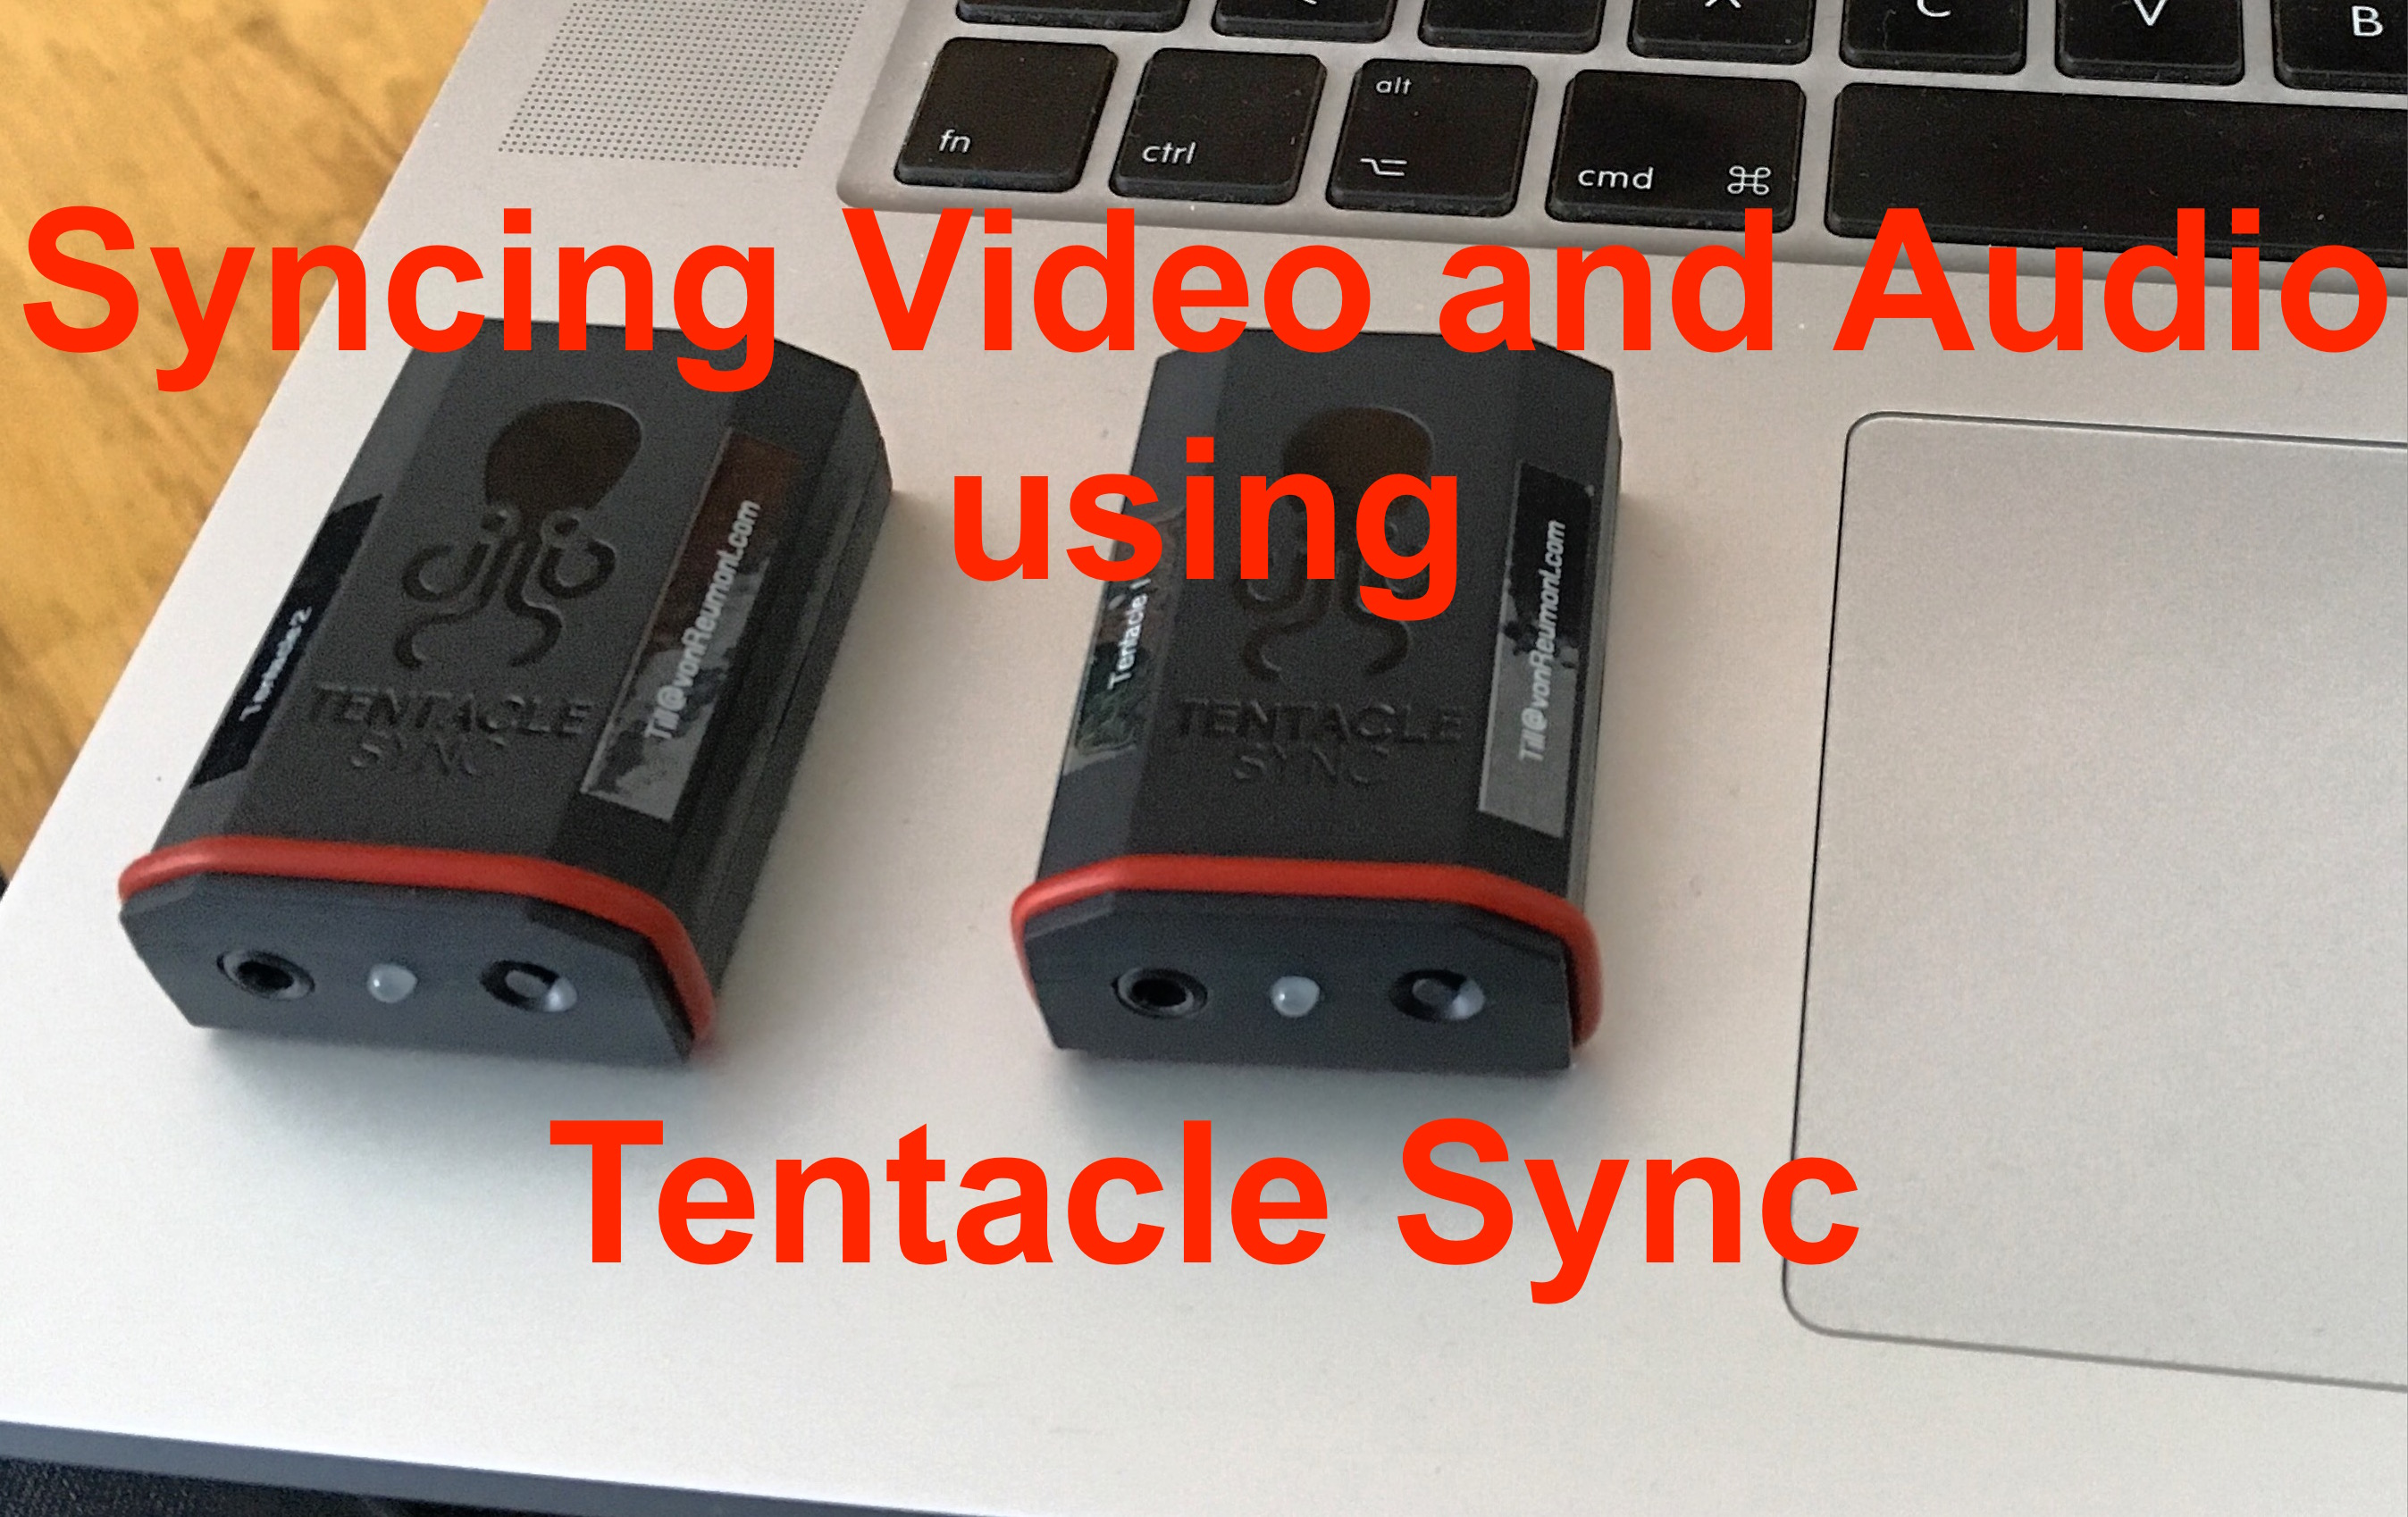 Syncing Video and Audio using Tentacles